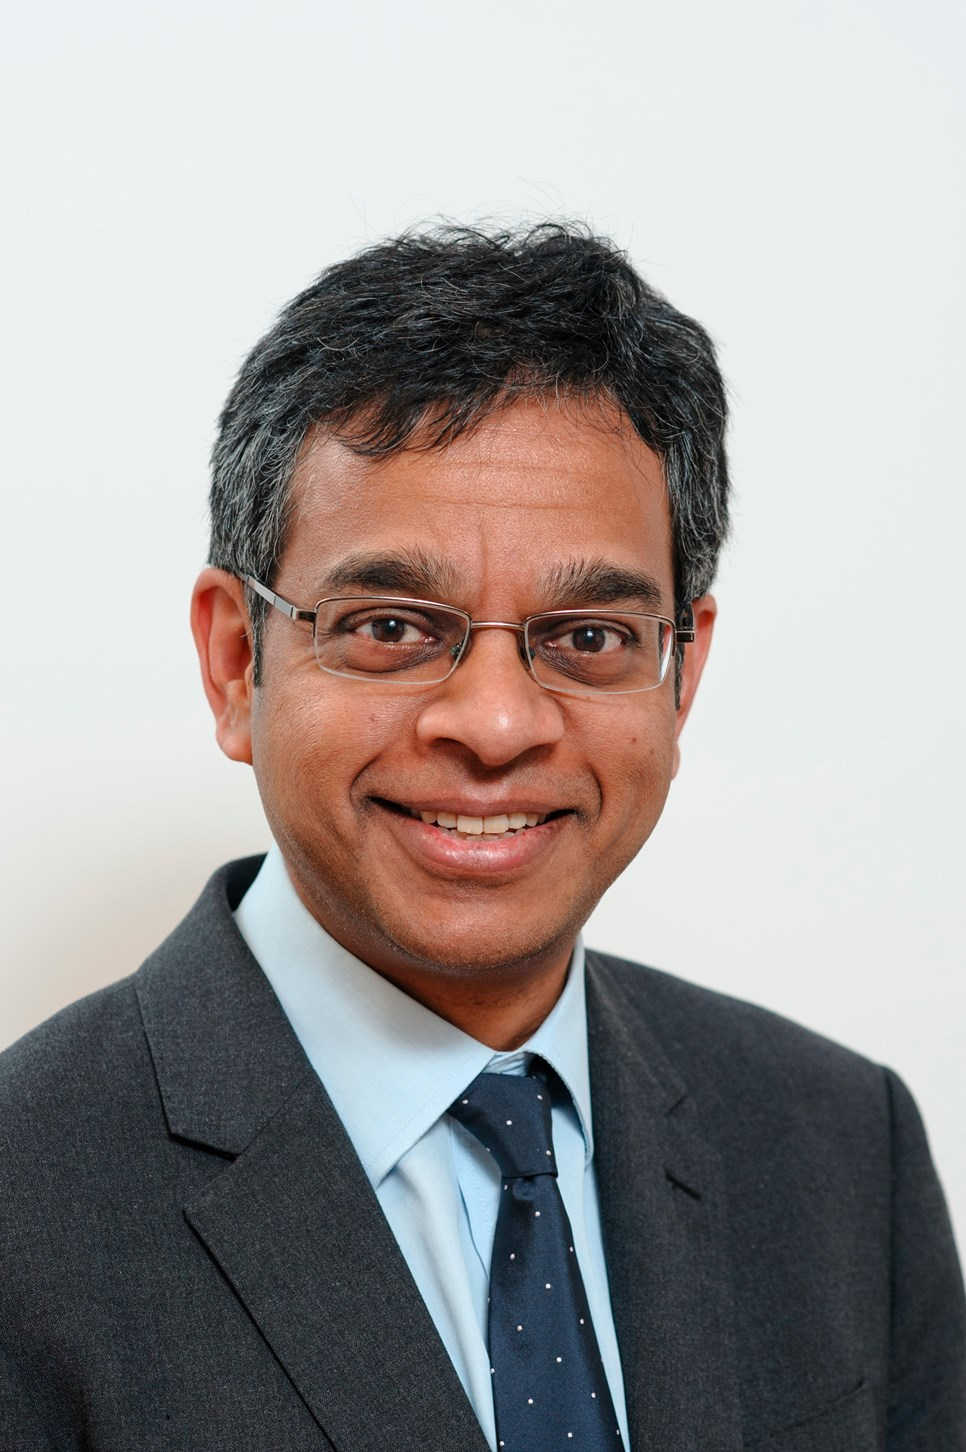 New company takes aim at treatments for multiple sclerosis: Siddharthan Chandran